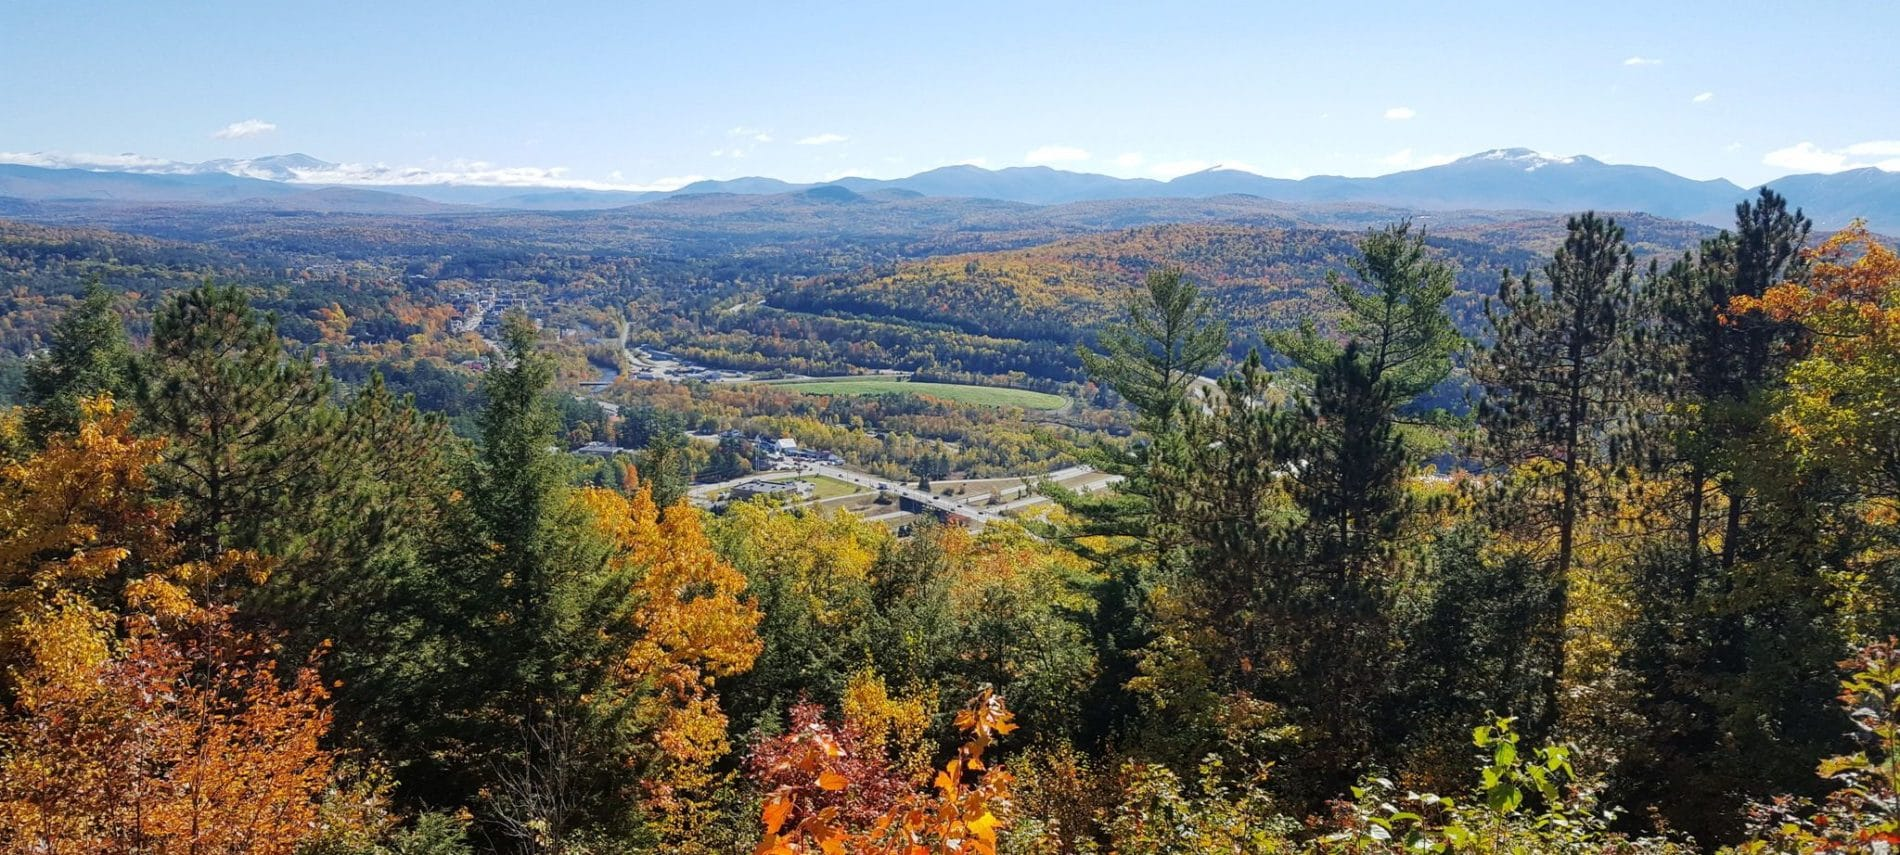 Mountain view and wooded terrain at the Kilburn Crags hiking Trails in Littleton New Hampshire